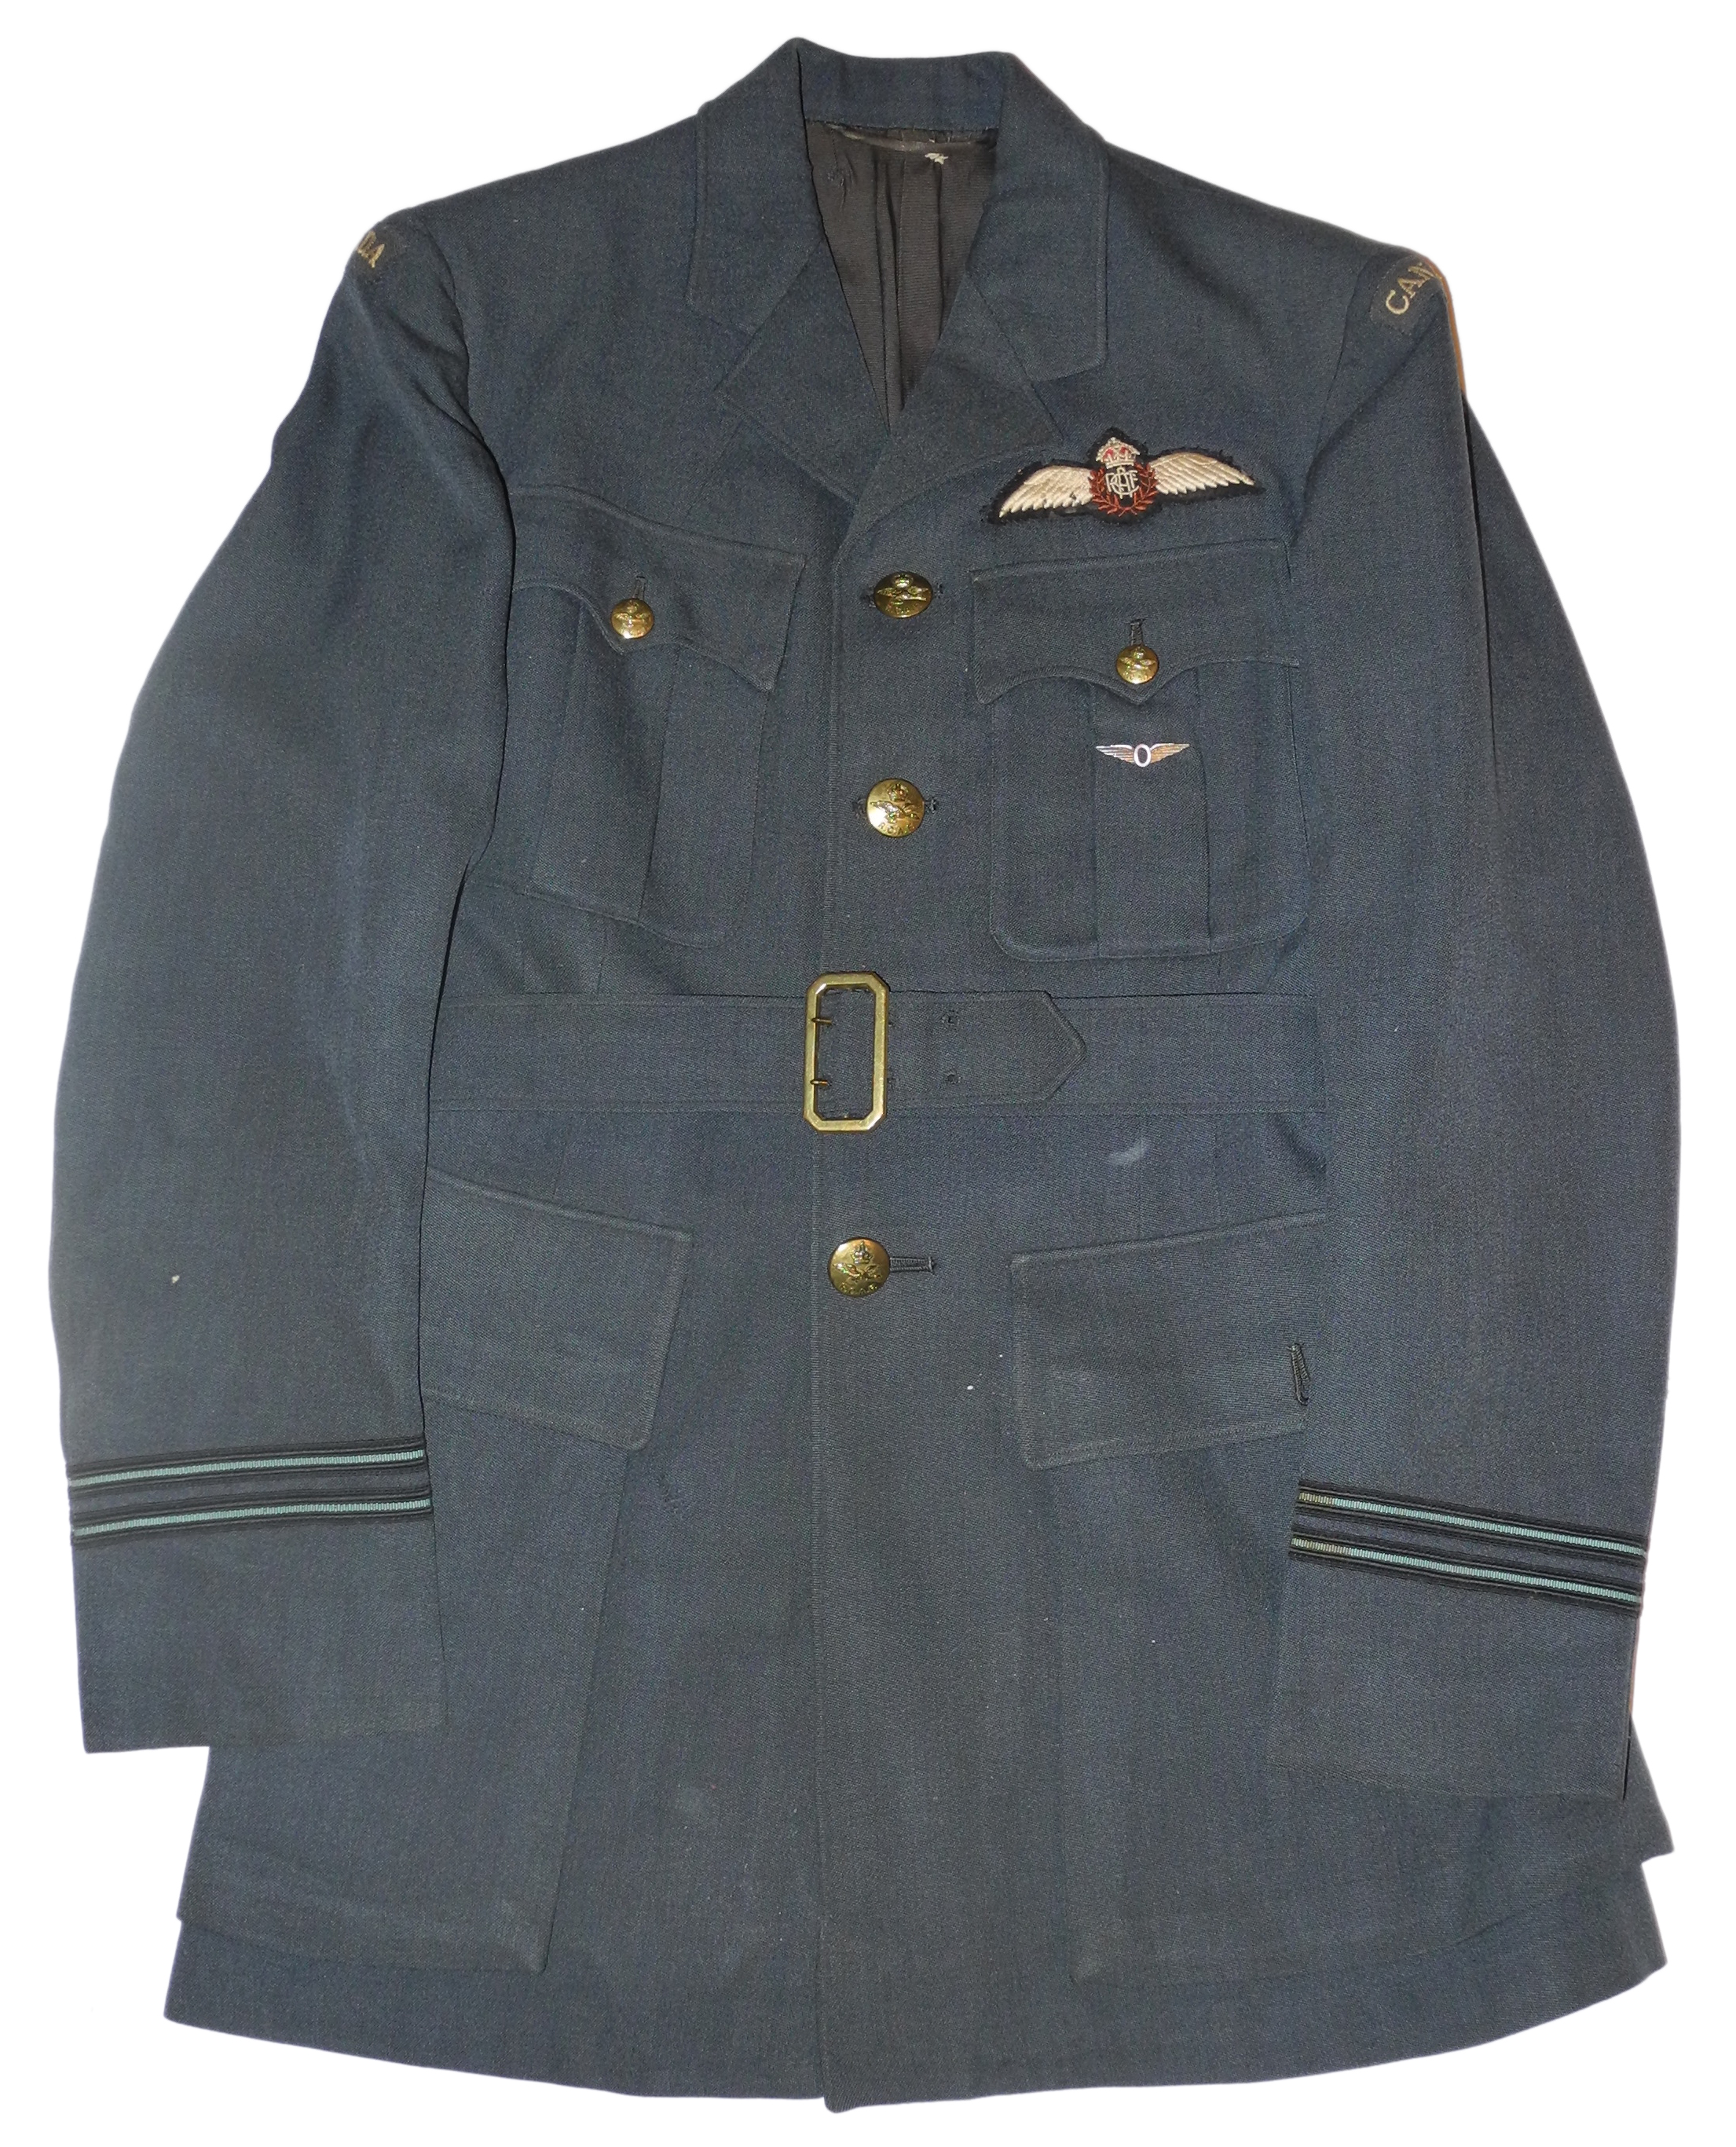 RCAF officer's tunic with Ops wing